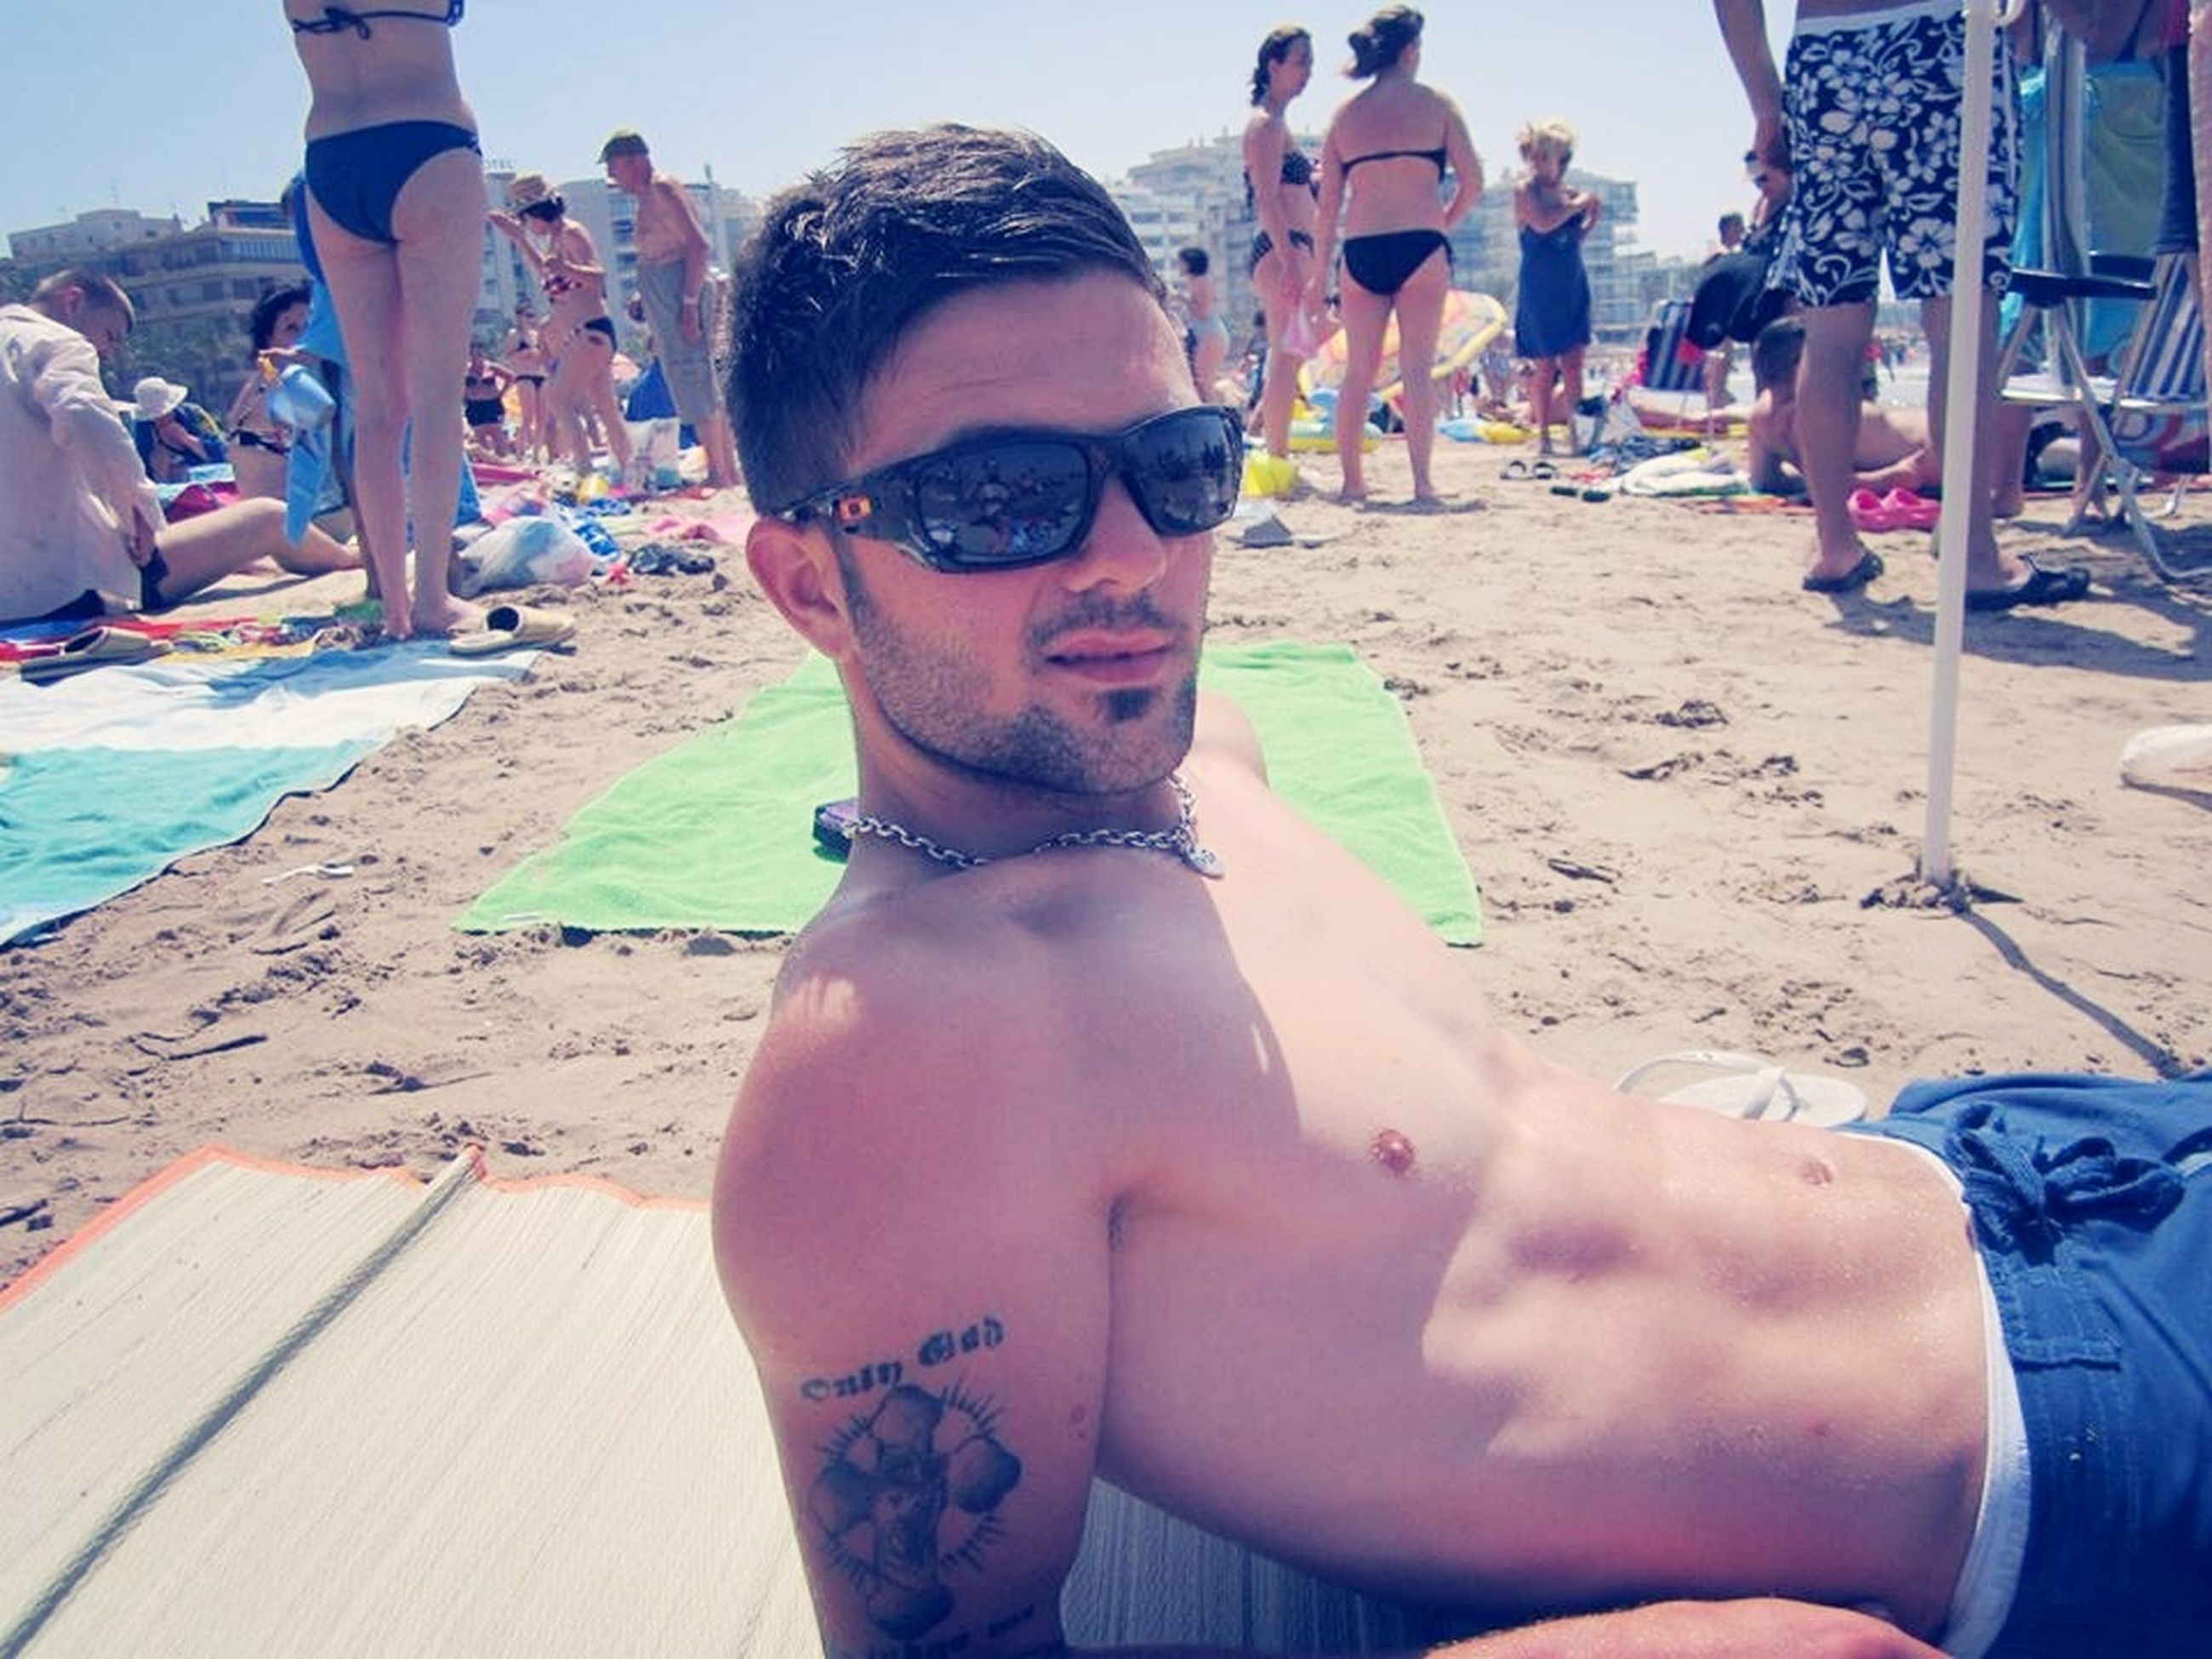 lifestyles, beach, leisure activity, sand, sunglasses, sunlight, person, young men, young adult, casual clothing, vacations, incidental people, portrait, shore, front view, outdoors, day, sitting